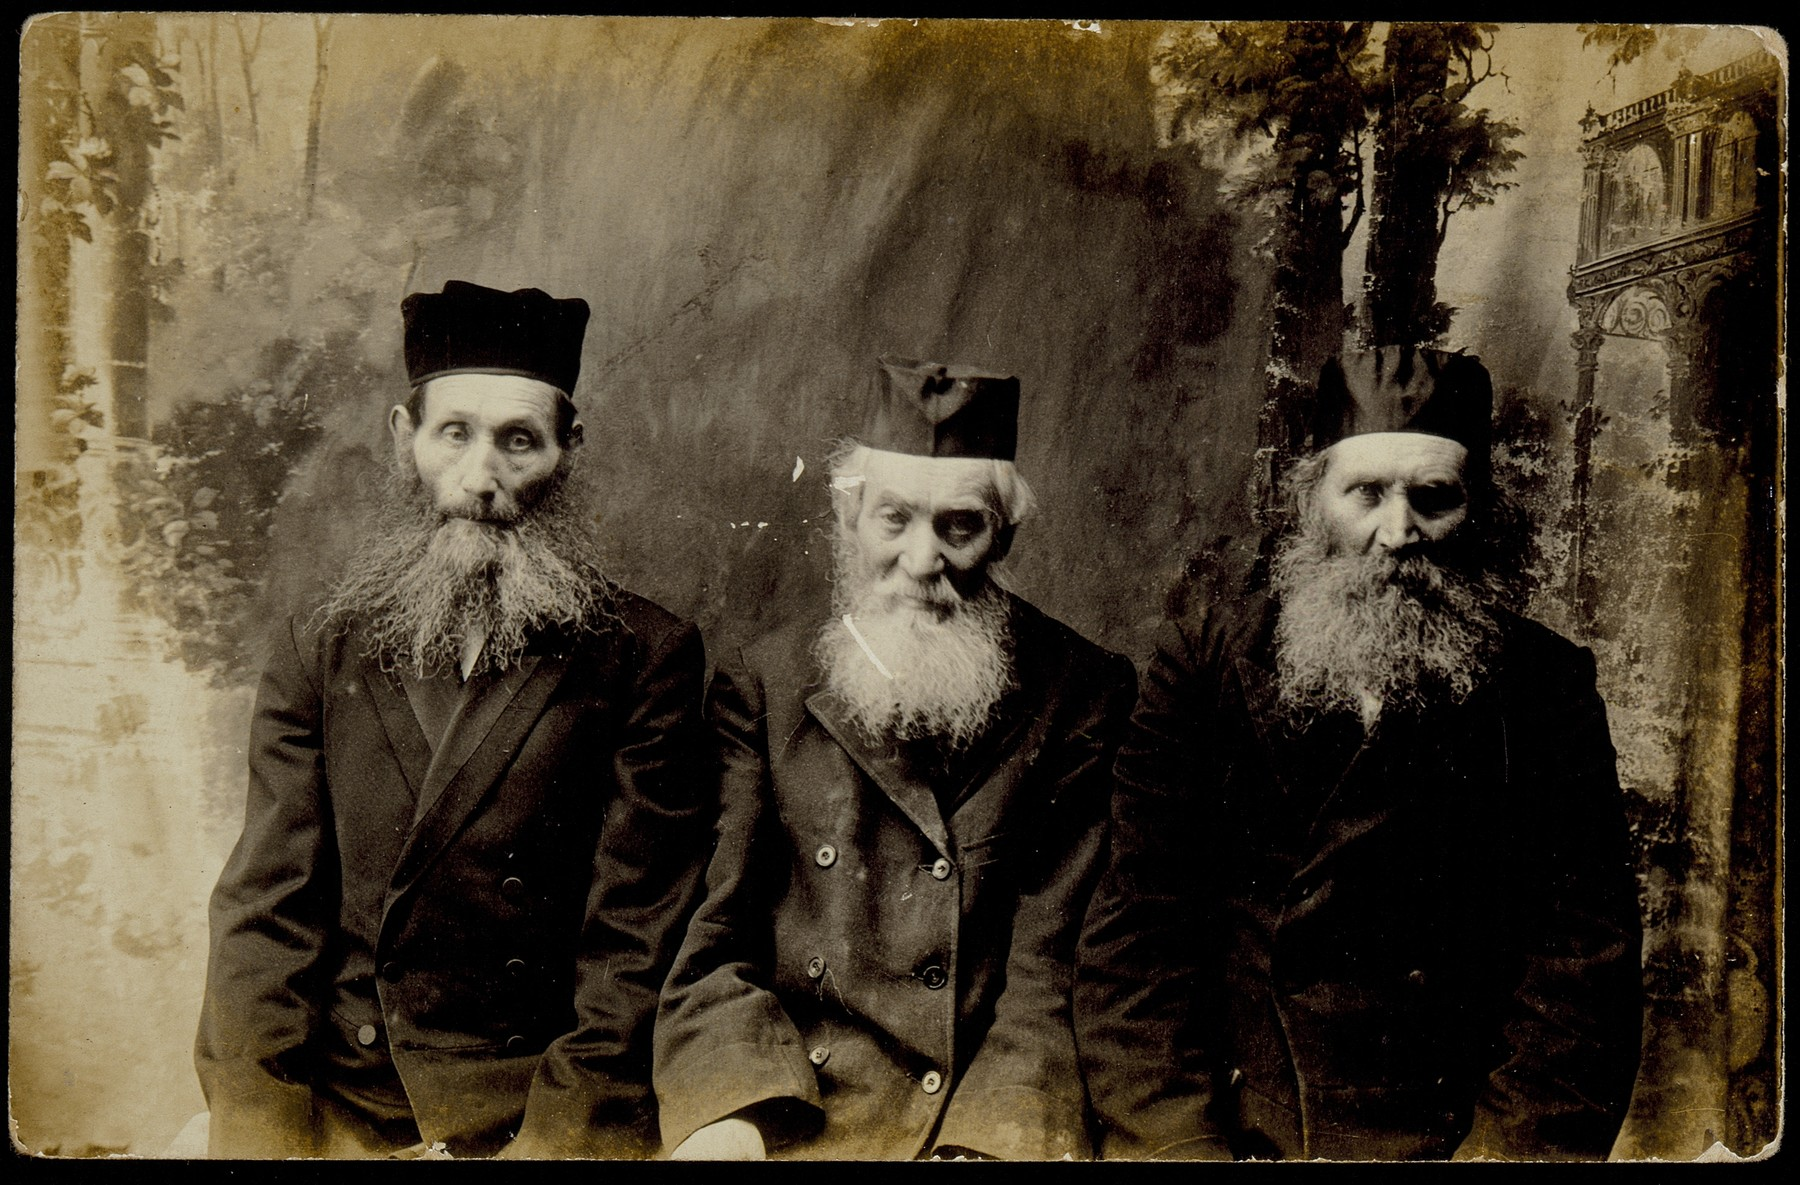 Avigdor Dwilanski (center) with his two brothers Rabbi Moshe-Leib Krisilov (left) and Rabbi Kosolewicz (first name unknown).   Each brother had taken a different name in order to avoid service in the tzarist army.  Reb Avigdor studied at the Volozhin yeshivah and was an accomplished scholar, but supported himself as a baker.